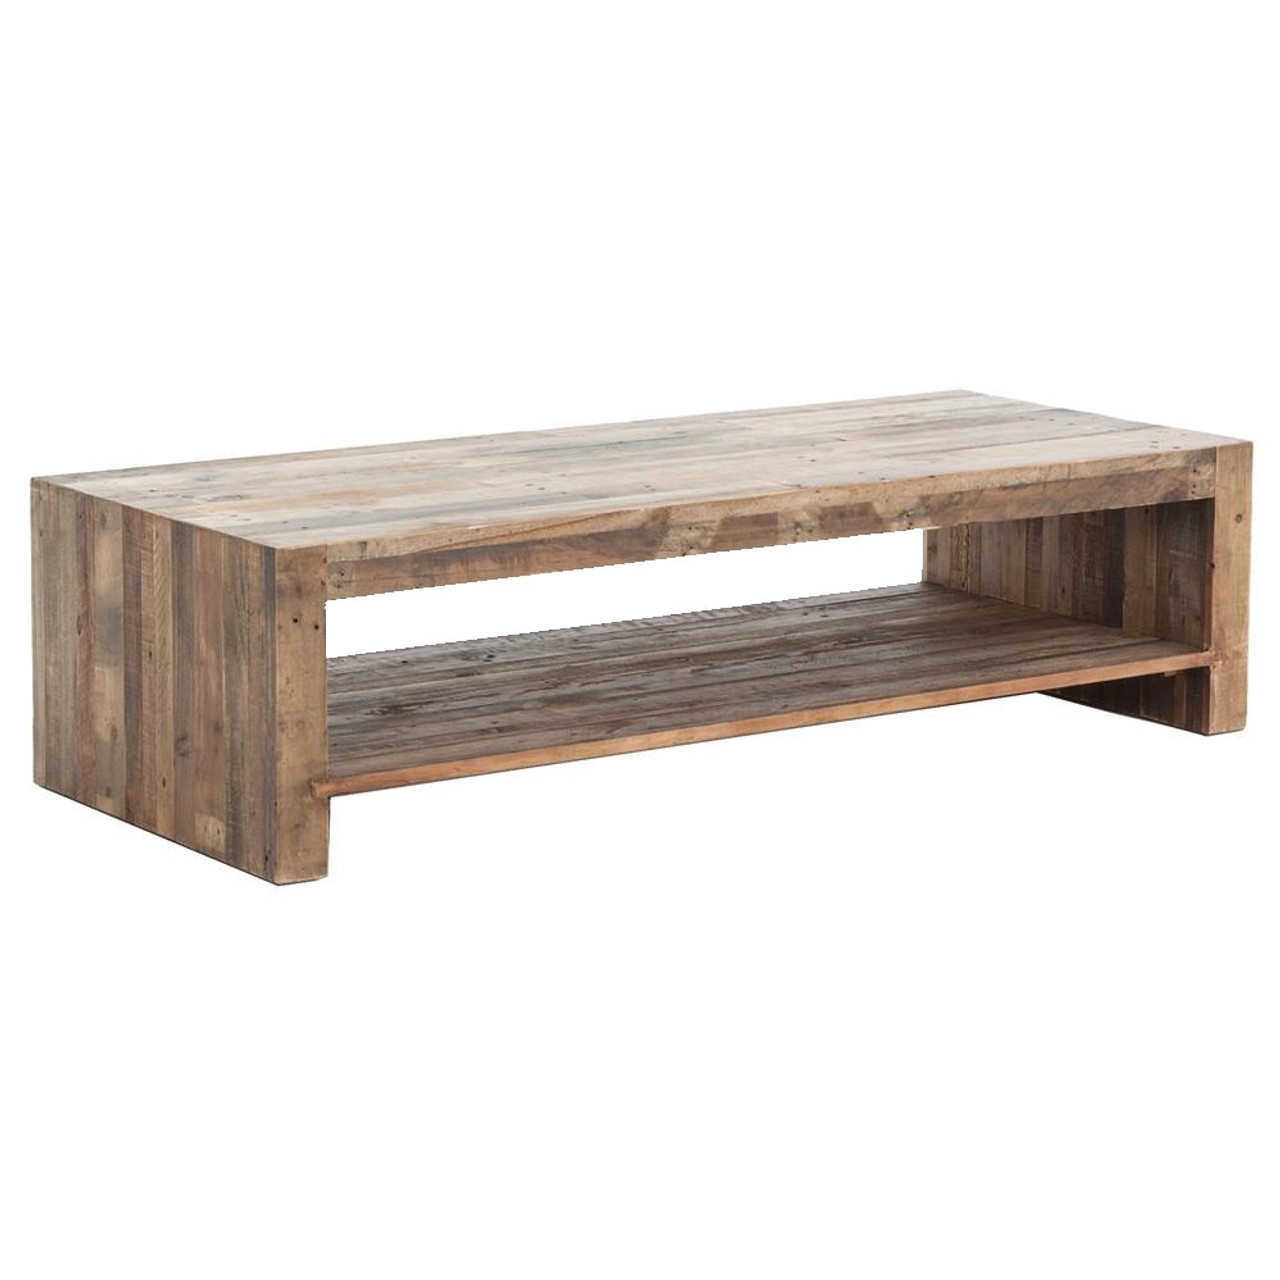 reclaimed wood coffee table Angora Reclaimed Wood Coffee Table 48